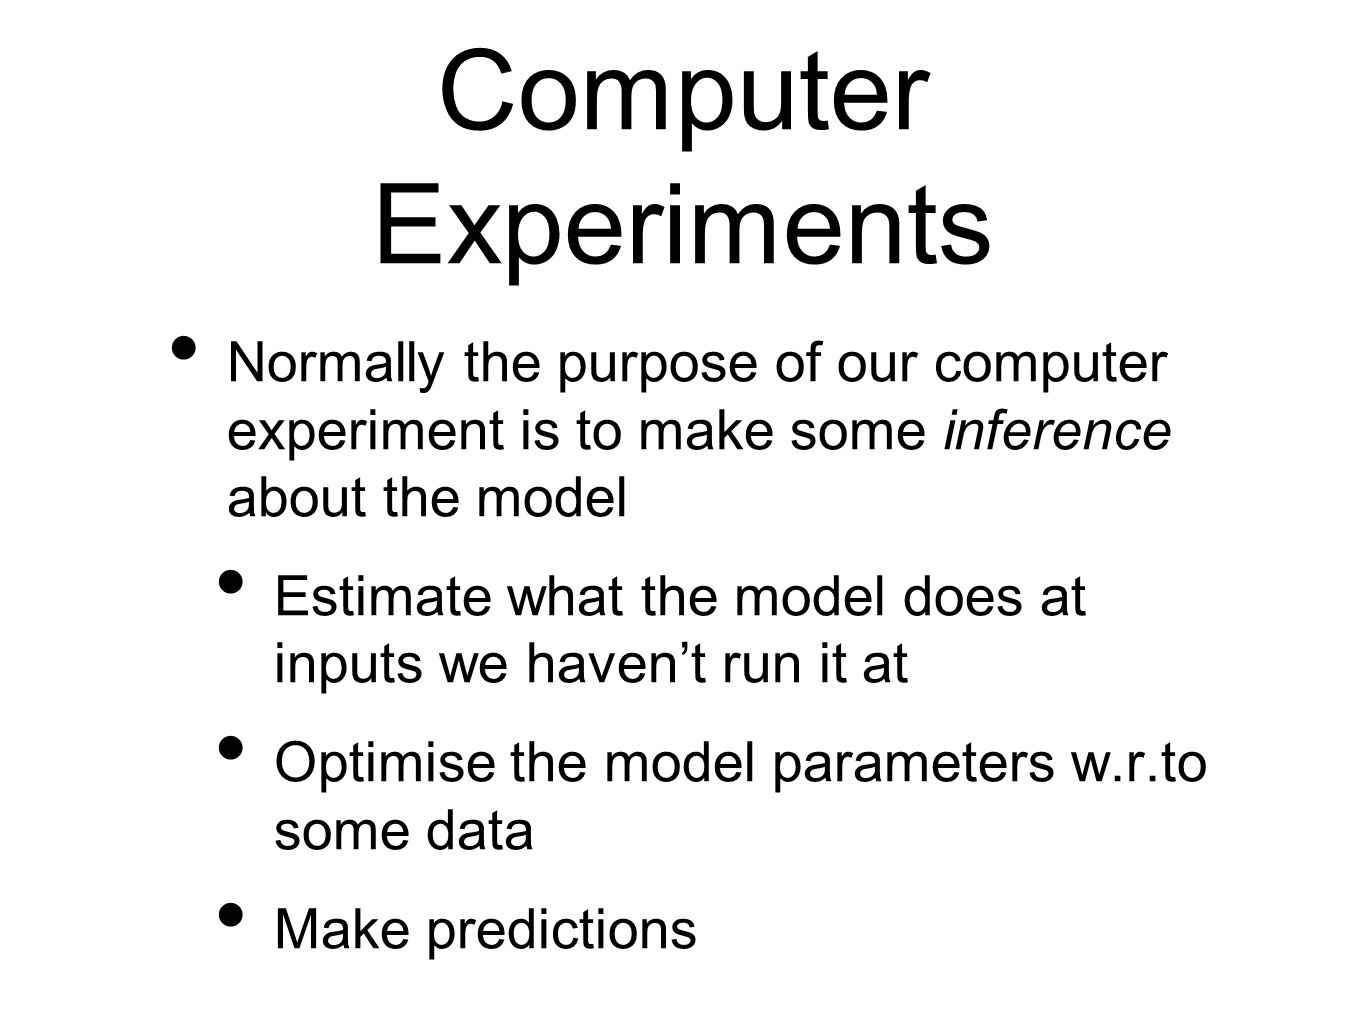 Computer Experiments Normally the purpose of our computer experiment is to make some inference about the model.